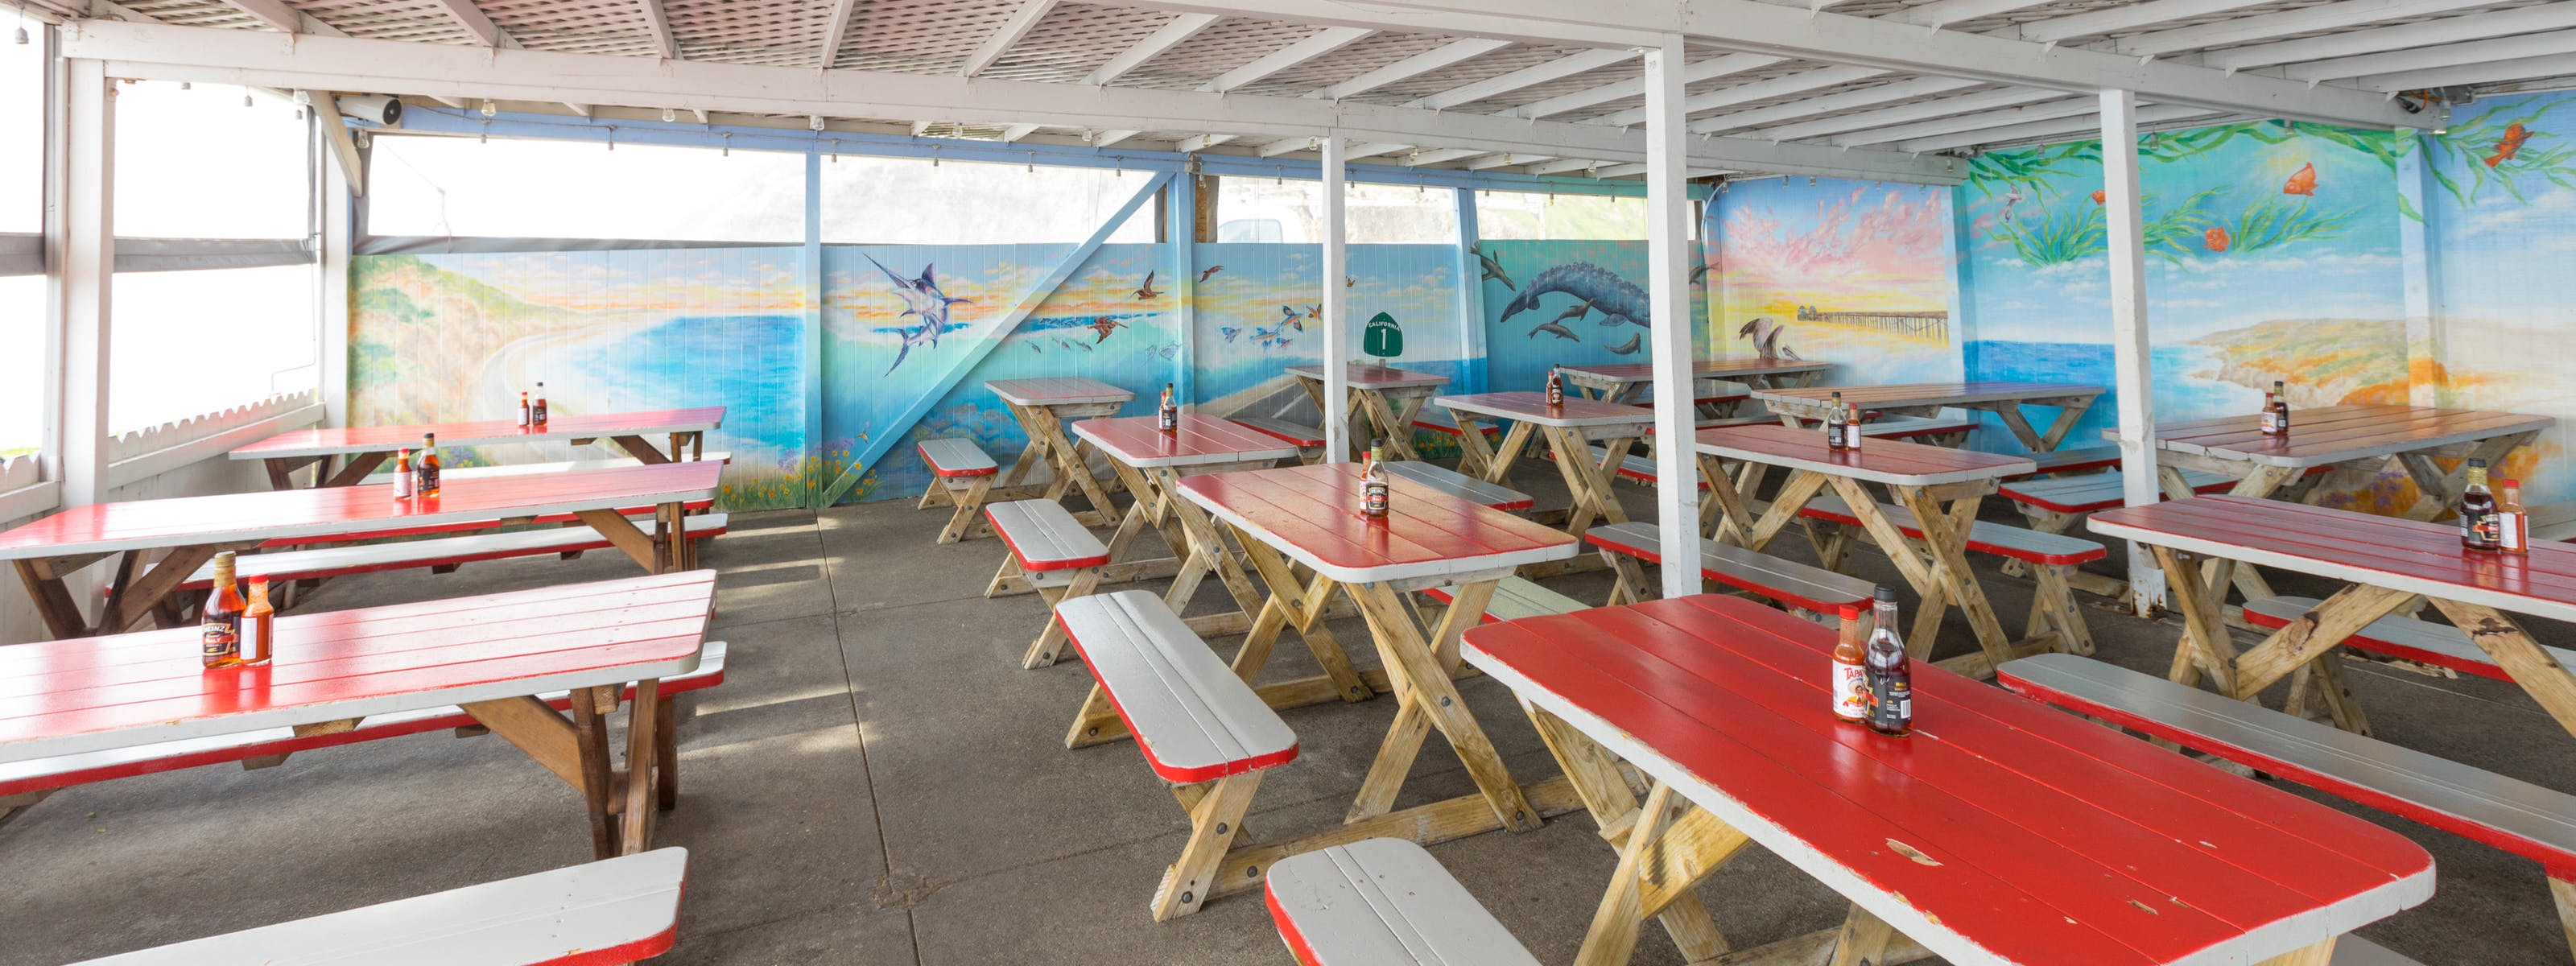 Where To Eat Seafood Outside In LA - Los Angeles - The Infatuation